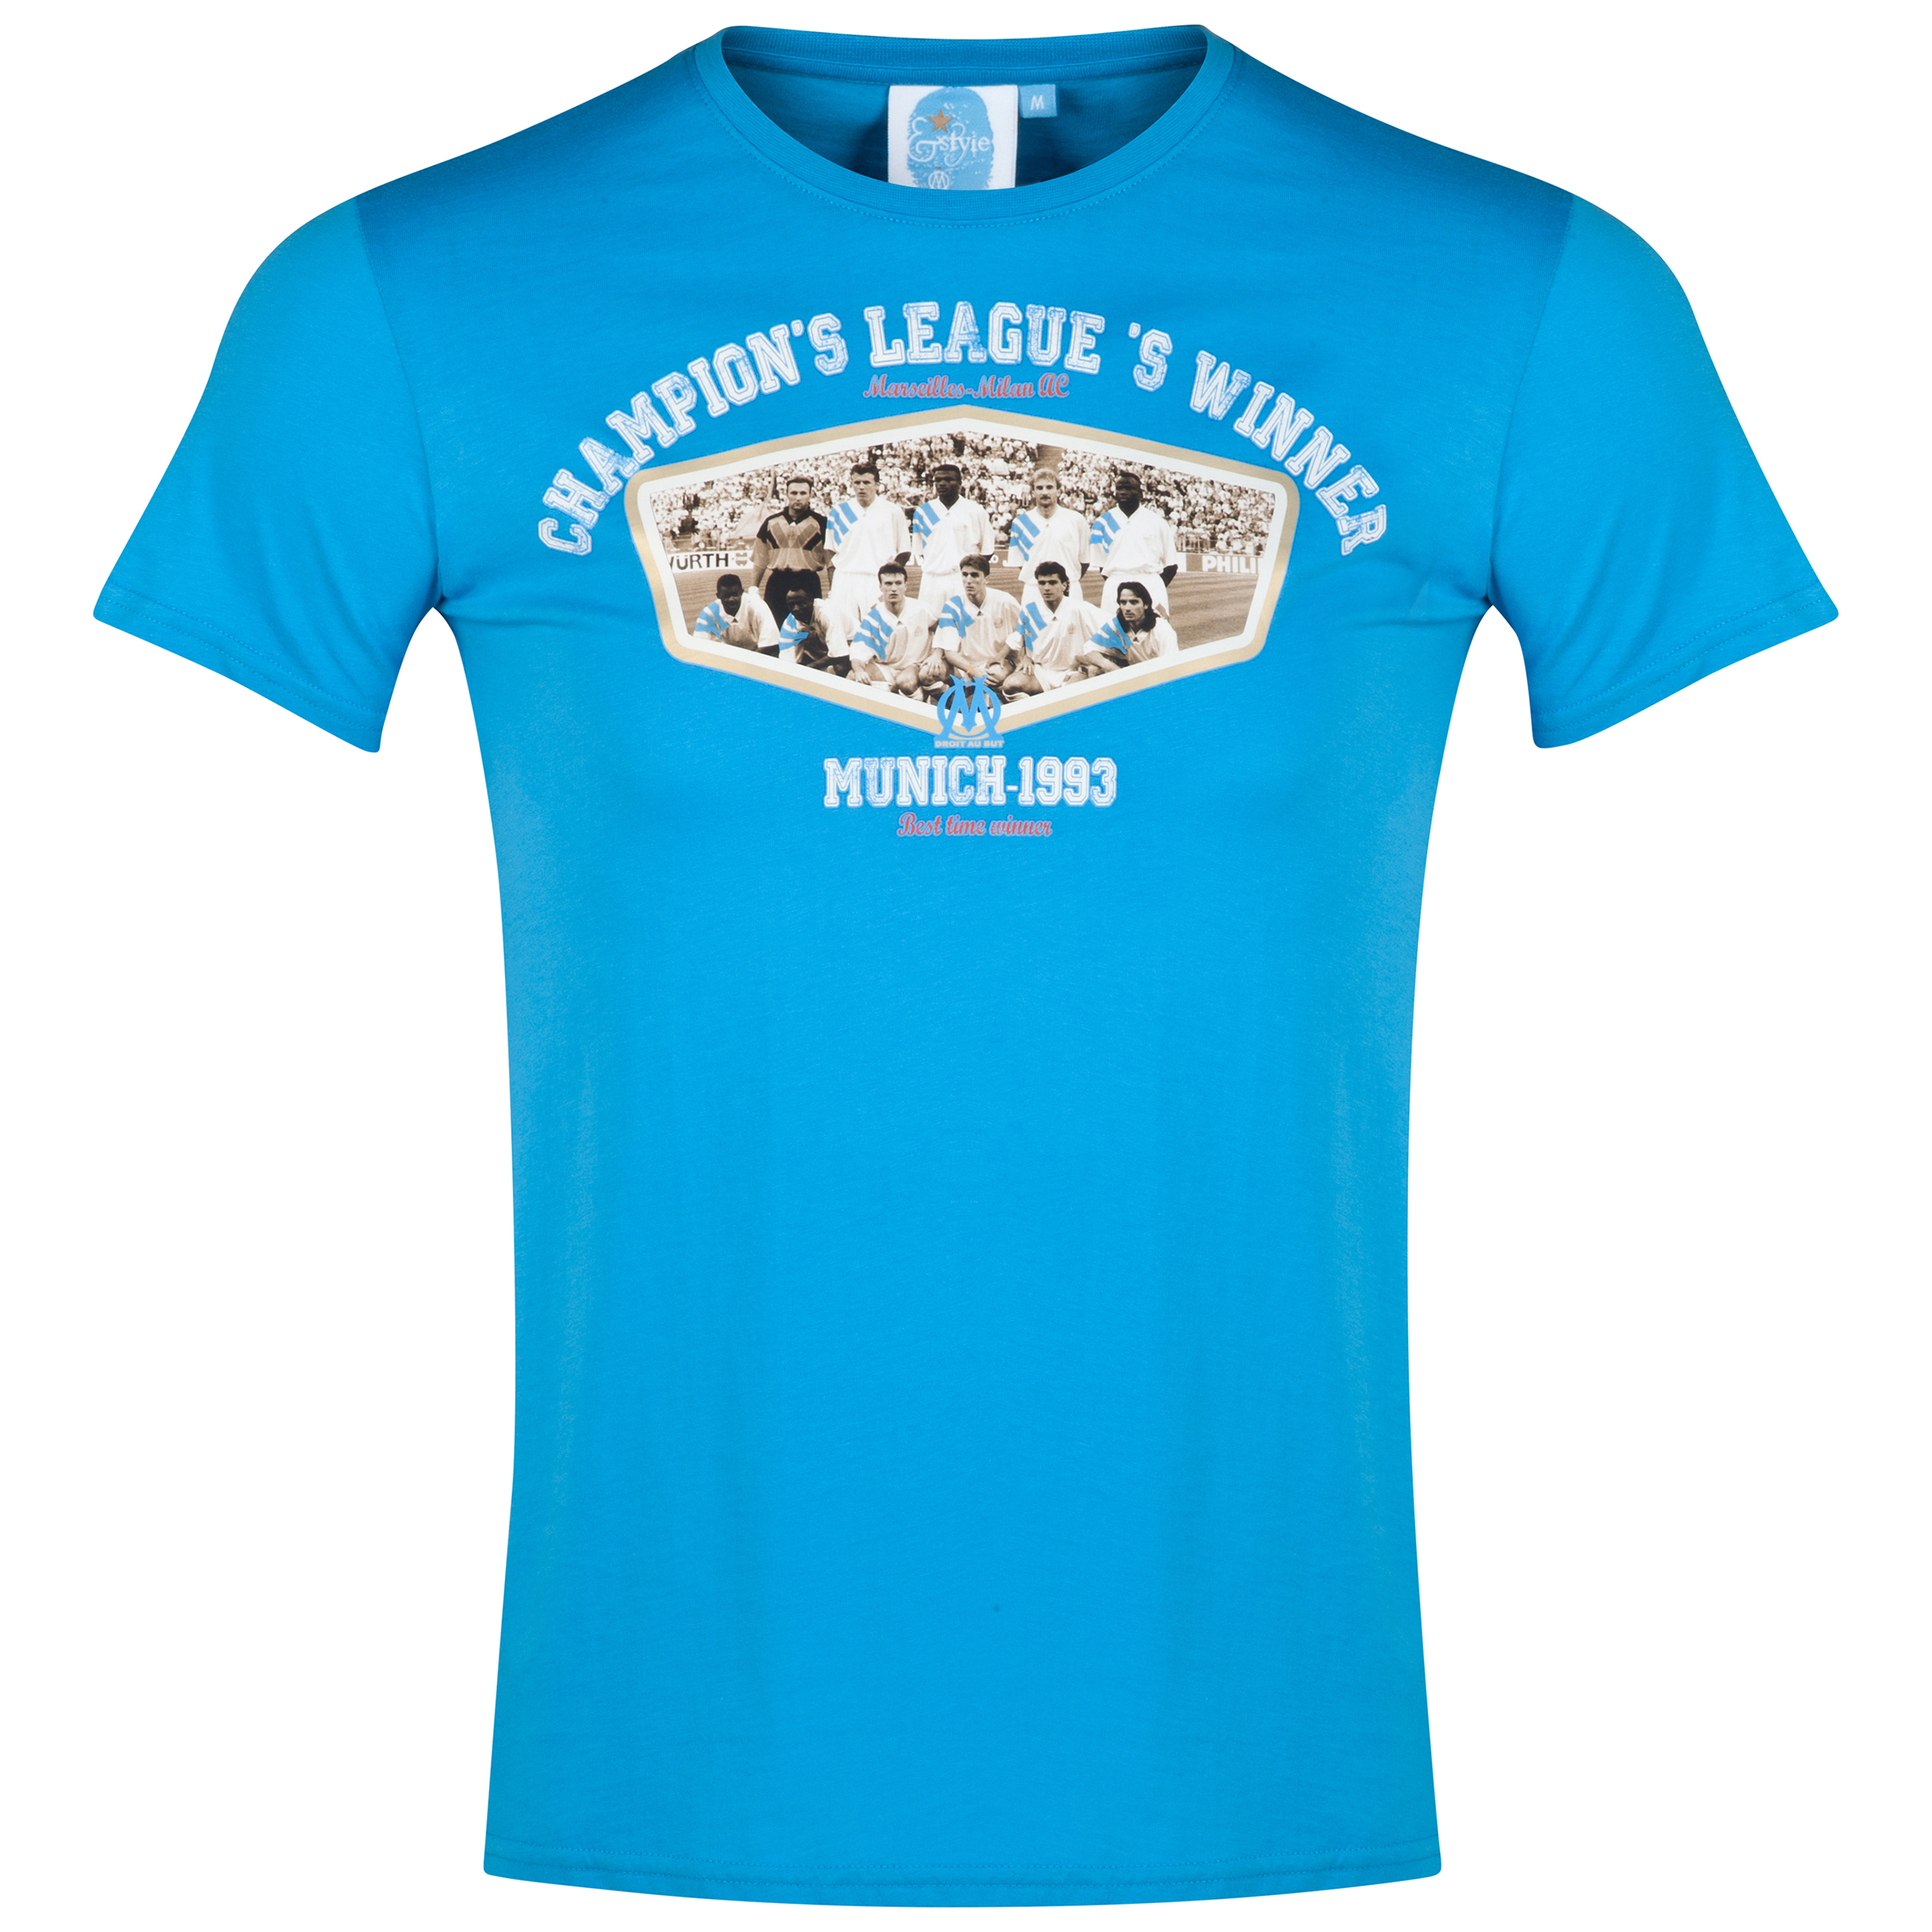 Olympique de Marseille Team Legend T-Shirt - Mens Blue